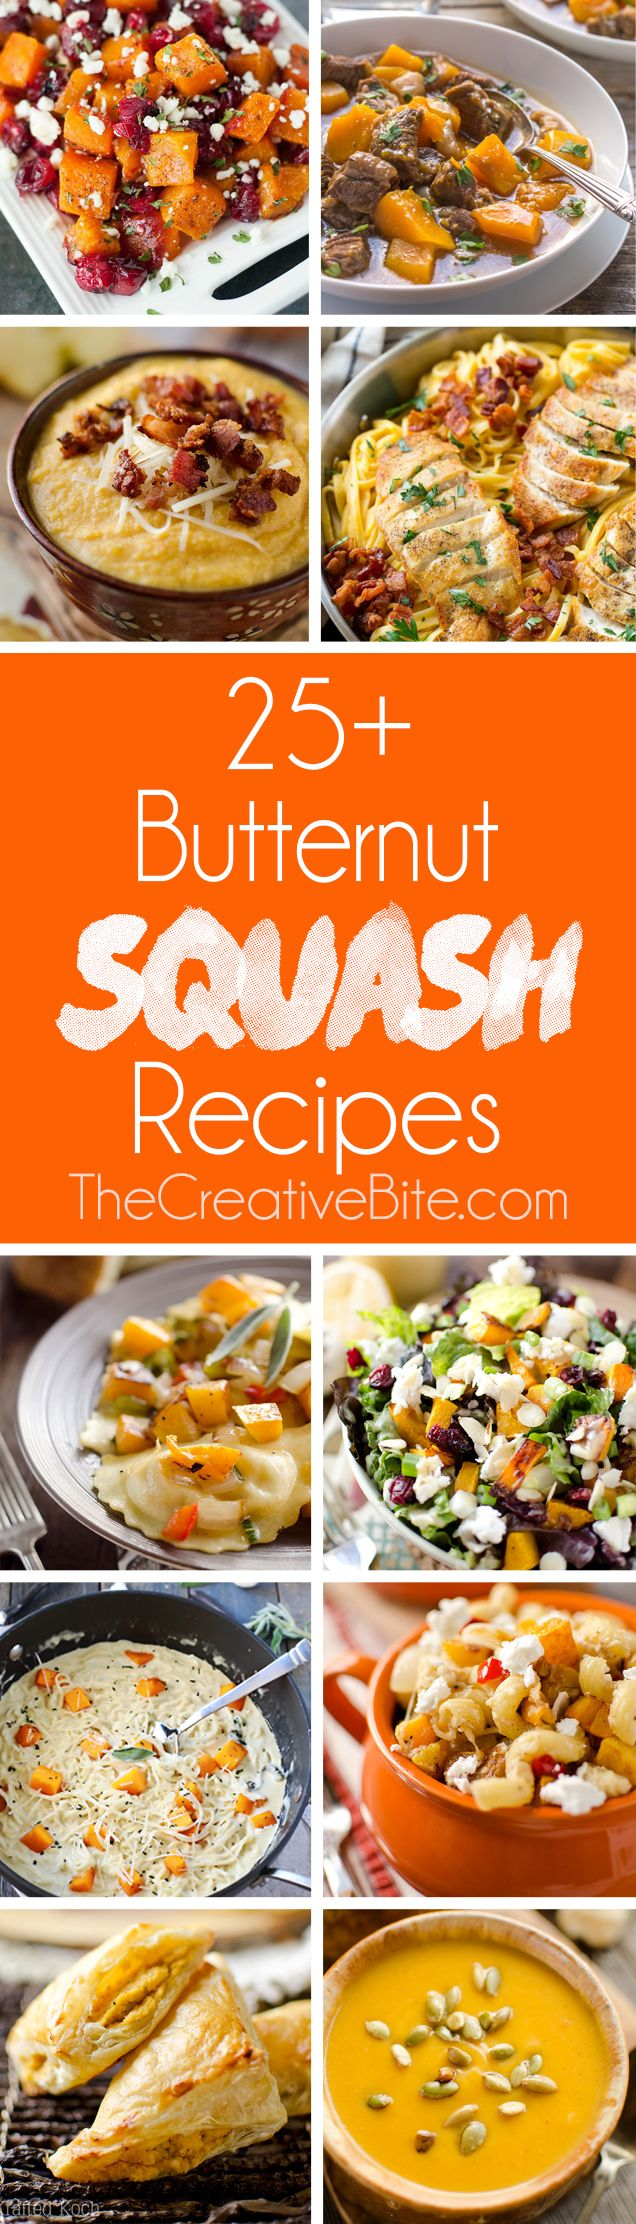 With over 25+ Butternut Squash Recipes, you are sure to find a dinner, side dish or dessert that you will love with this seasonal fall vegetable! http://www.thecreativebite.com/butternut-squash-recipes/?utm_campaign=coschedule&utm_source=pinterest&utm_medium=Danielle%20%7C%20The%20Creative%20Bite&utm_content=25%2B%20Butternut%20Squash%20Recipes